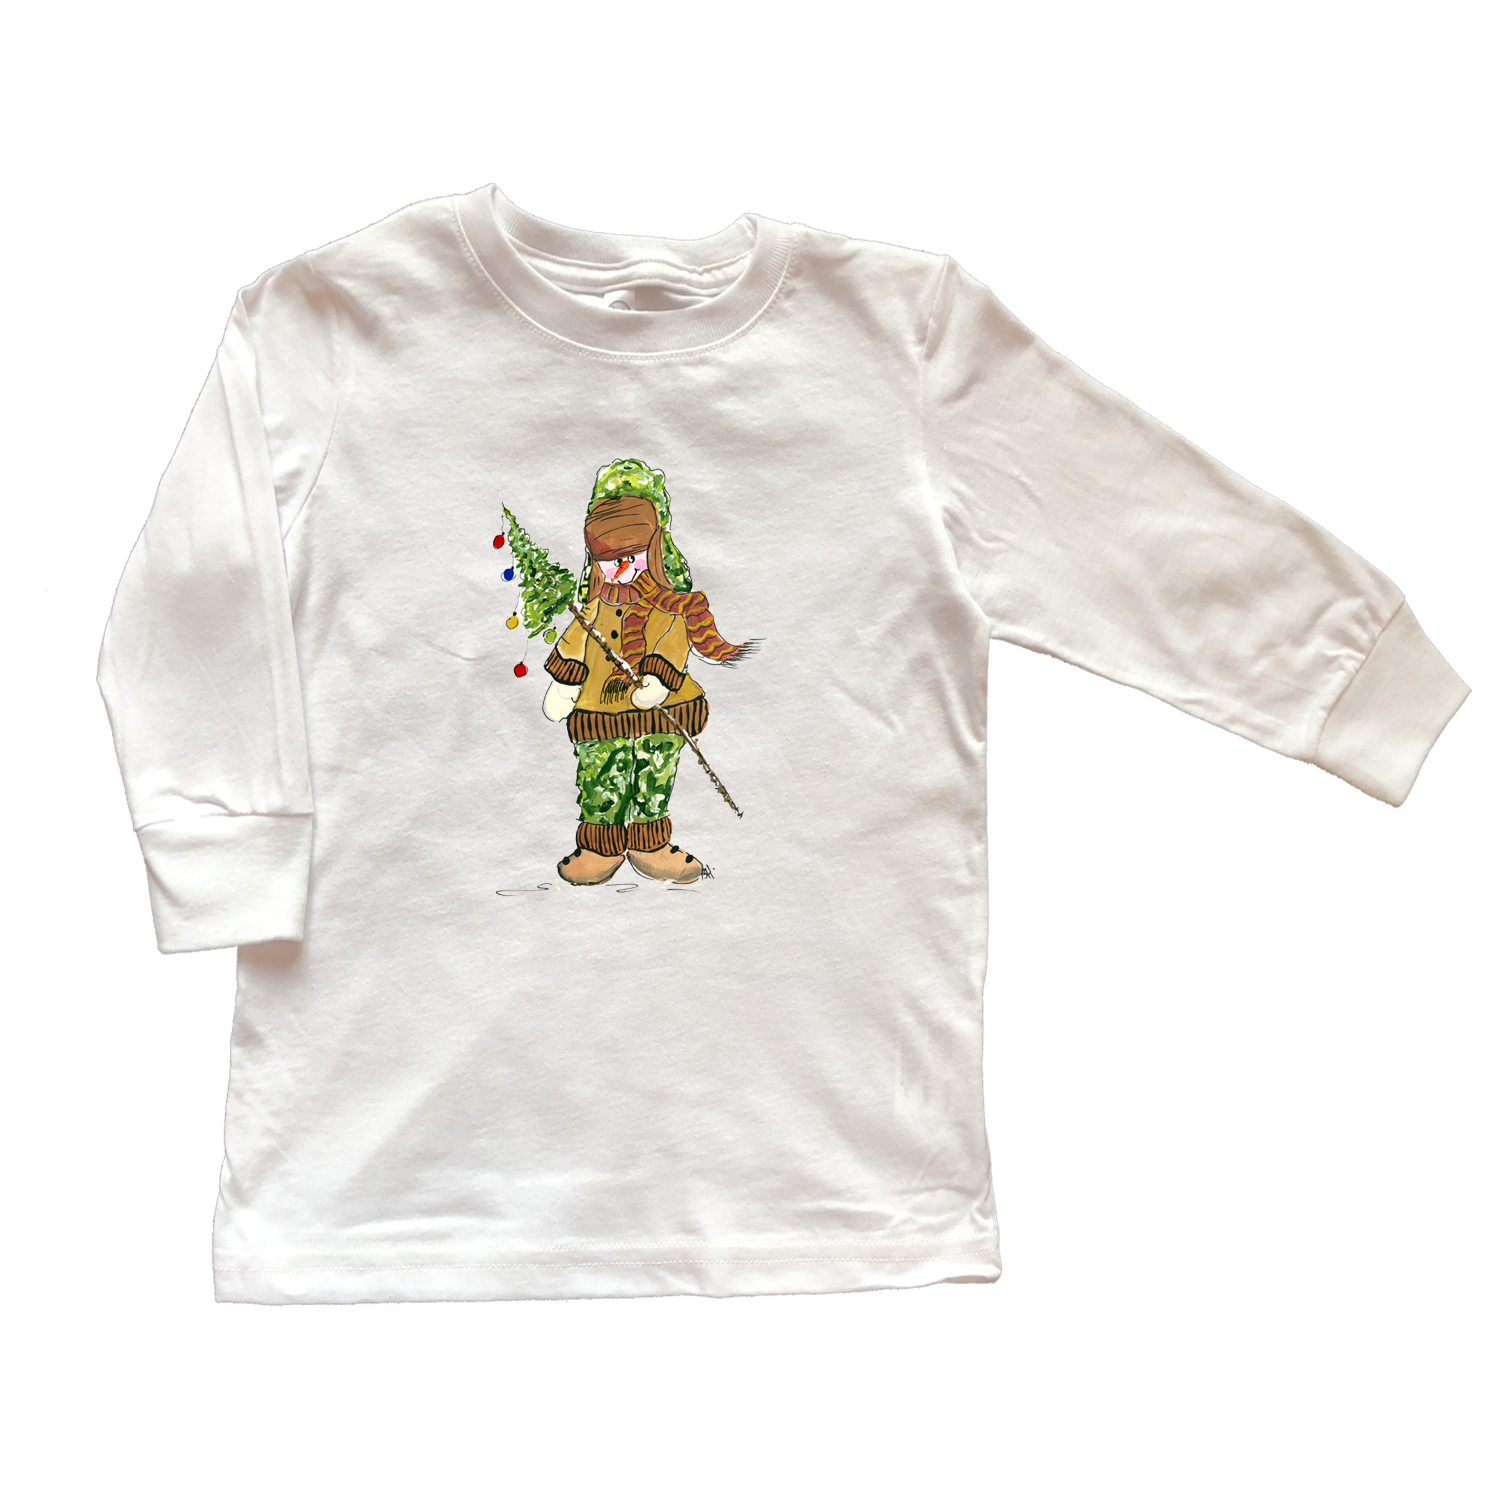 Boys Tee Shirt Long Sleeve TS1045